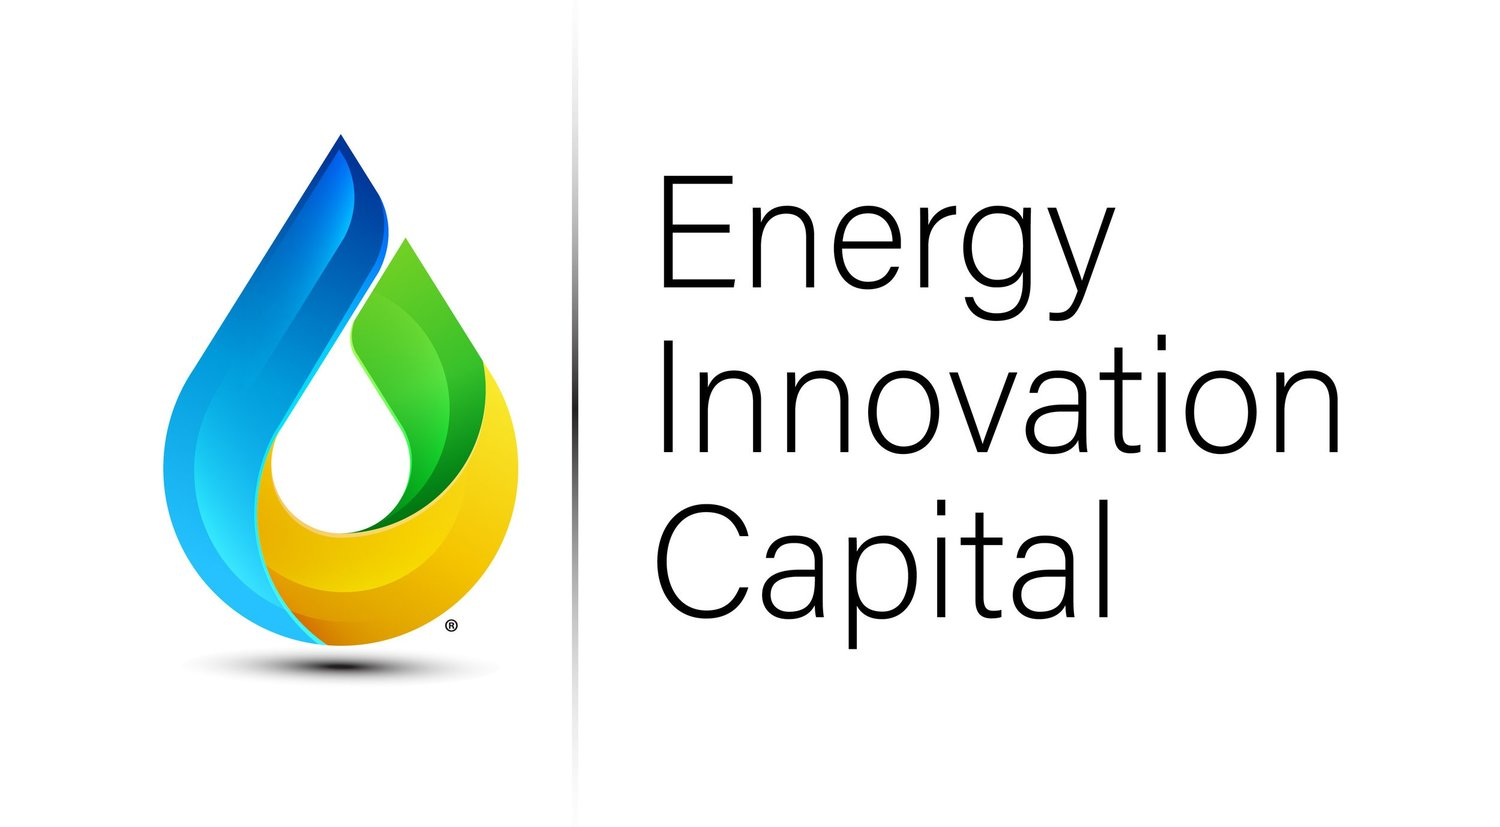 About — Energy Innovation Capital